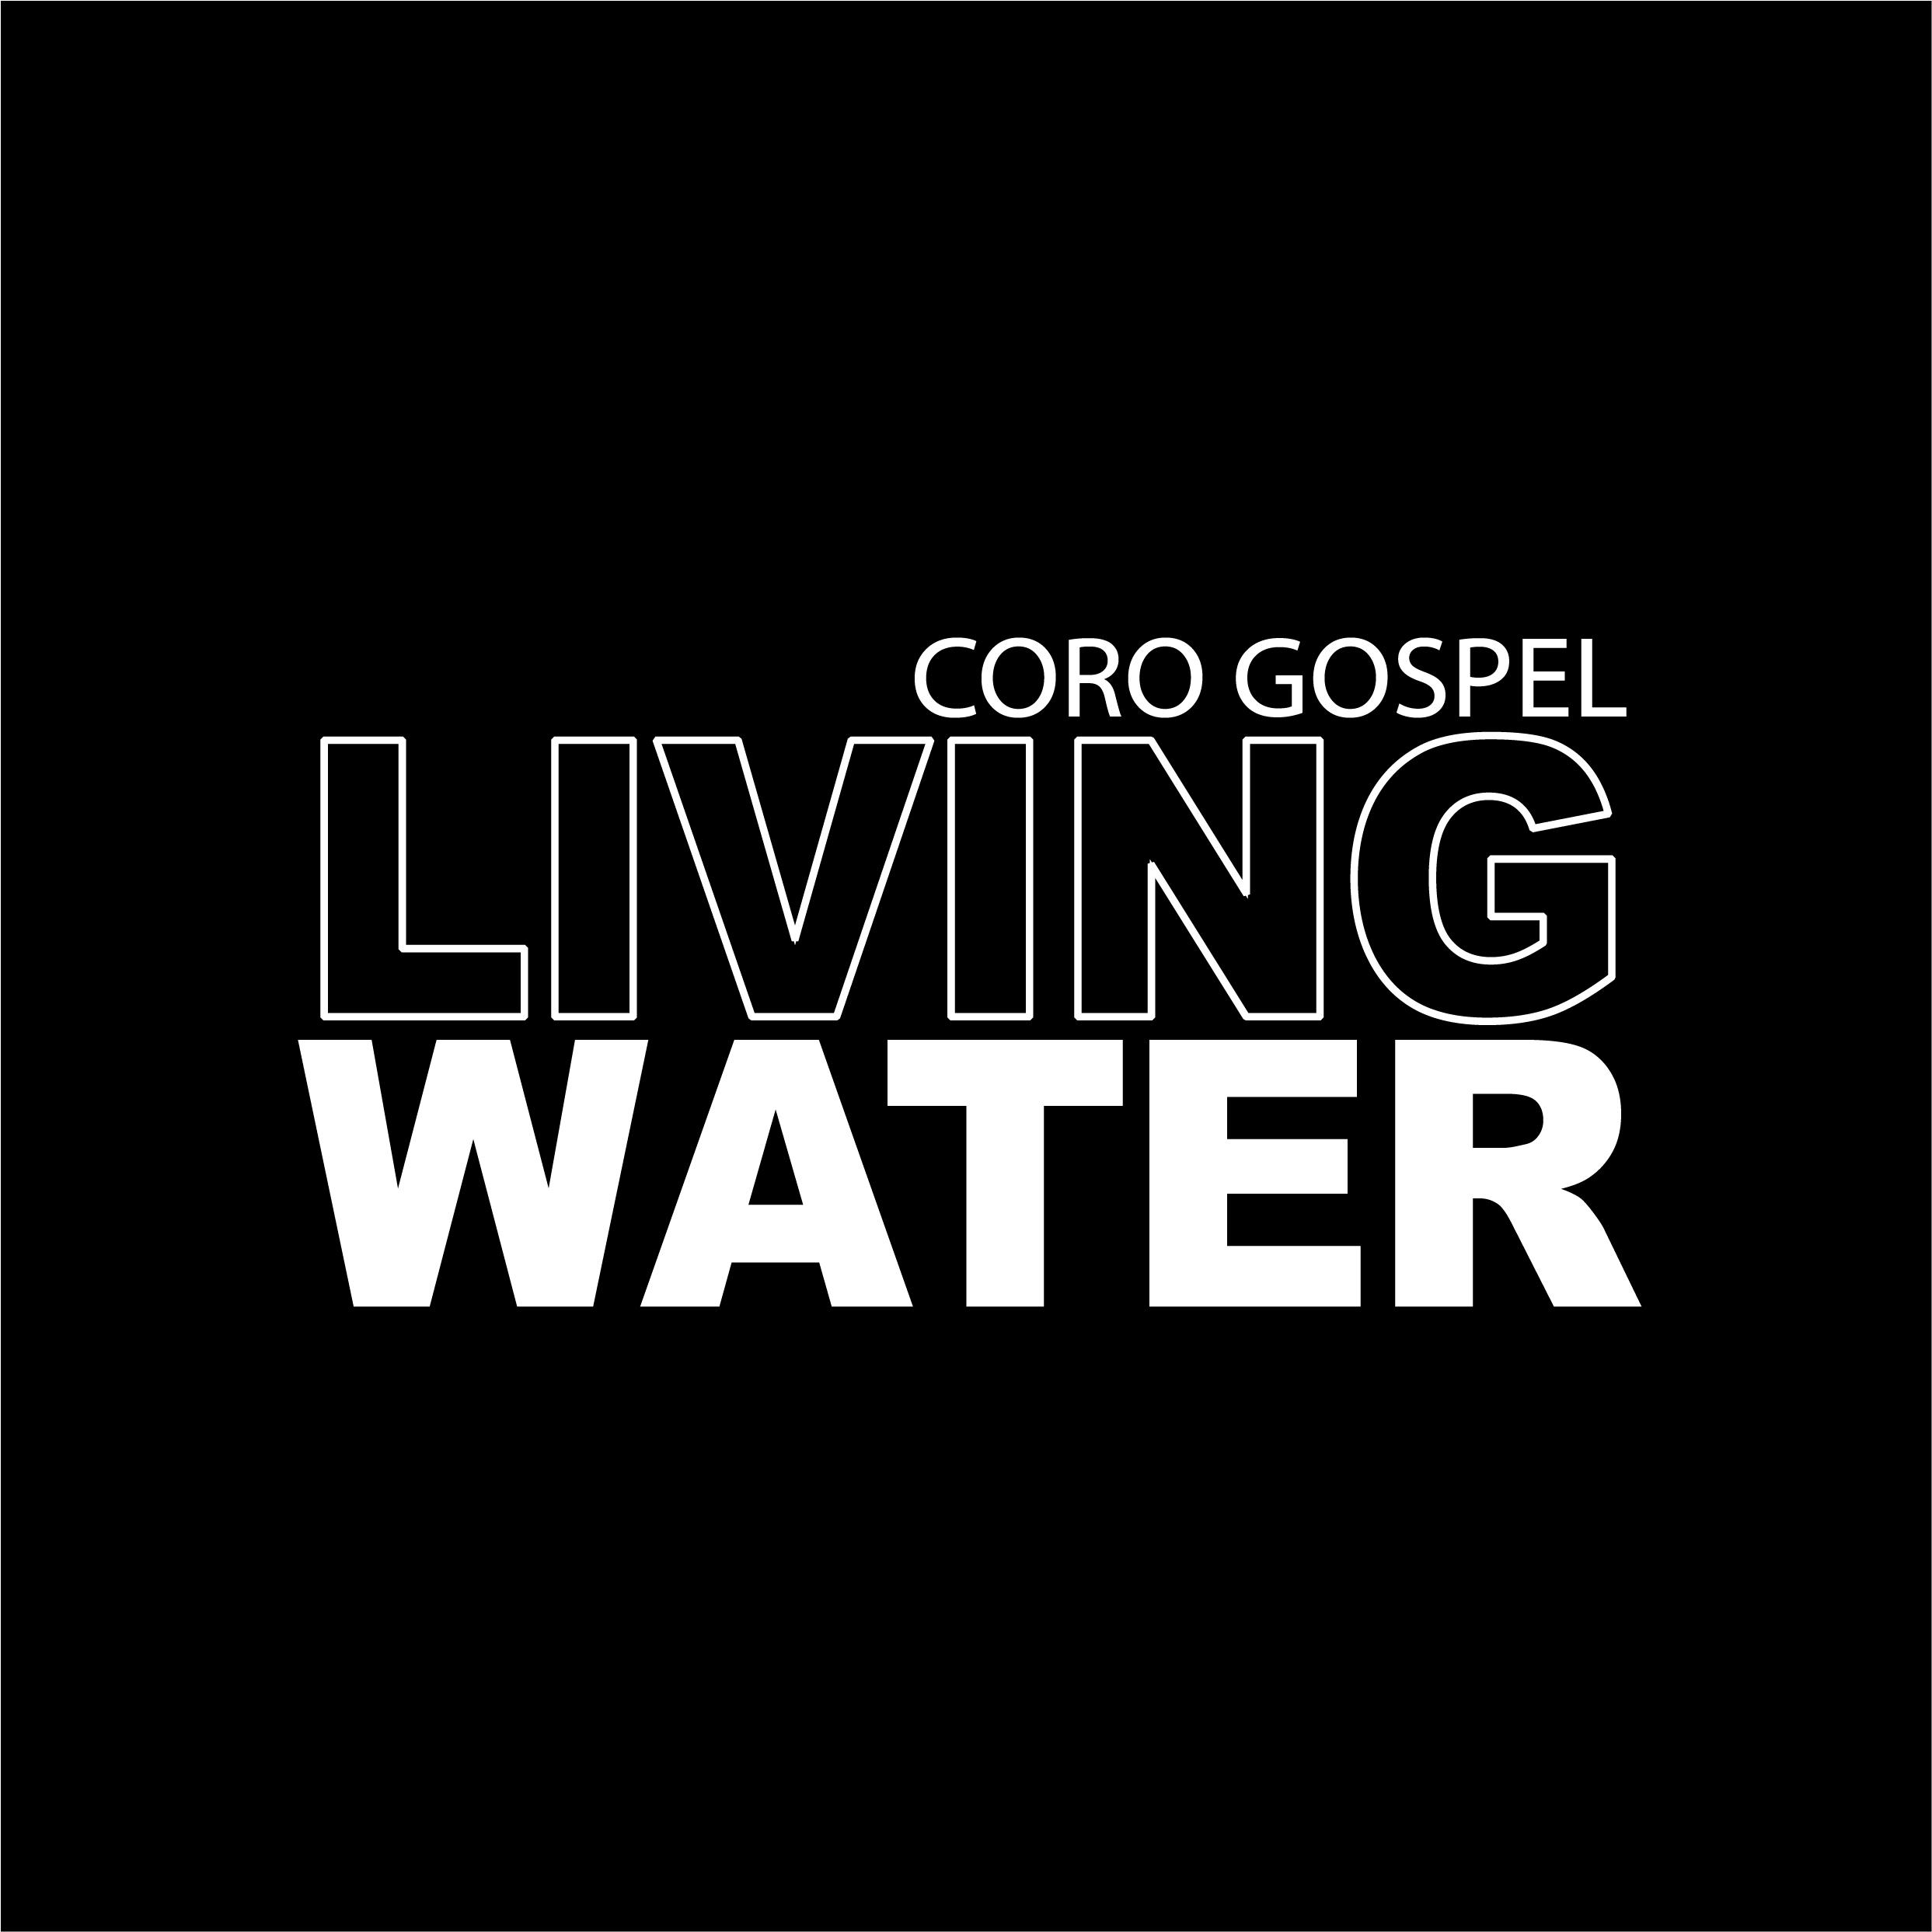 Coro Gospel Living Water Logo